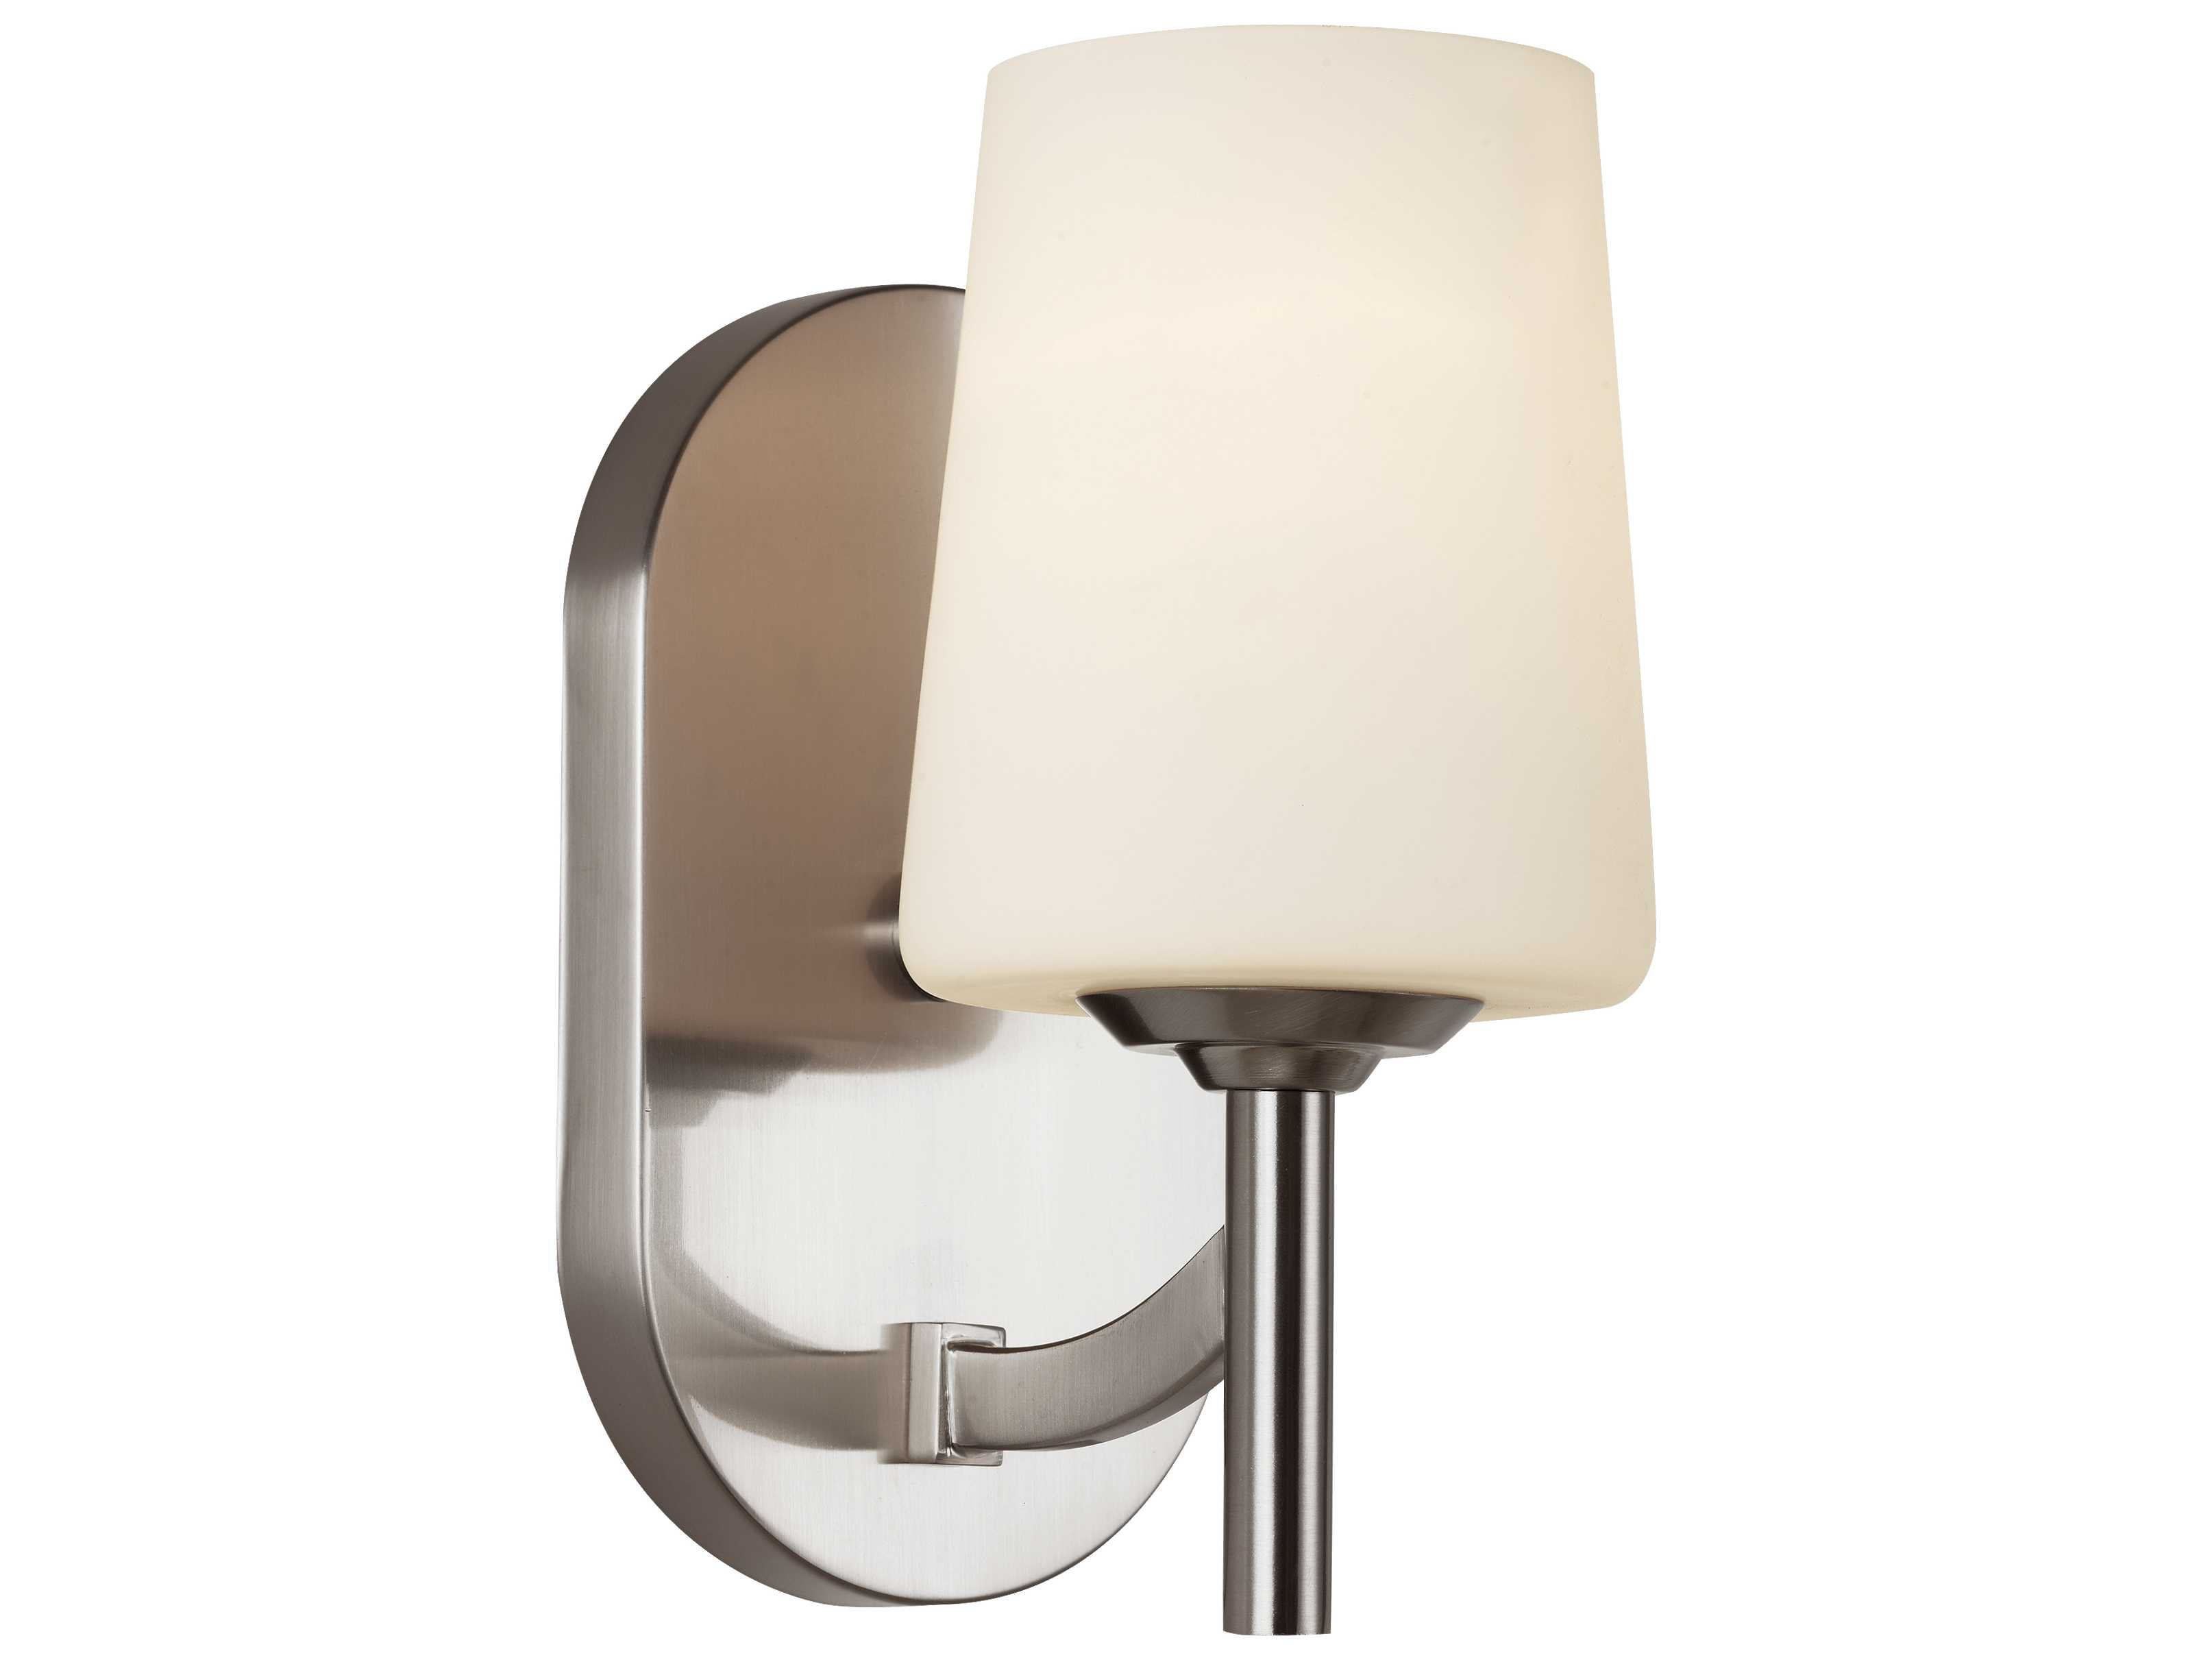 Wall Sconces Mid Century : Trans Globe Lighting Mid-Century Brushed Nickel Wall Sconce 70351-BN